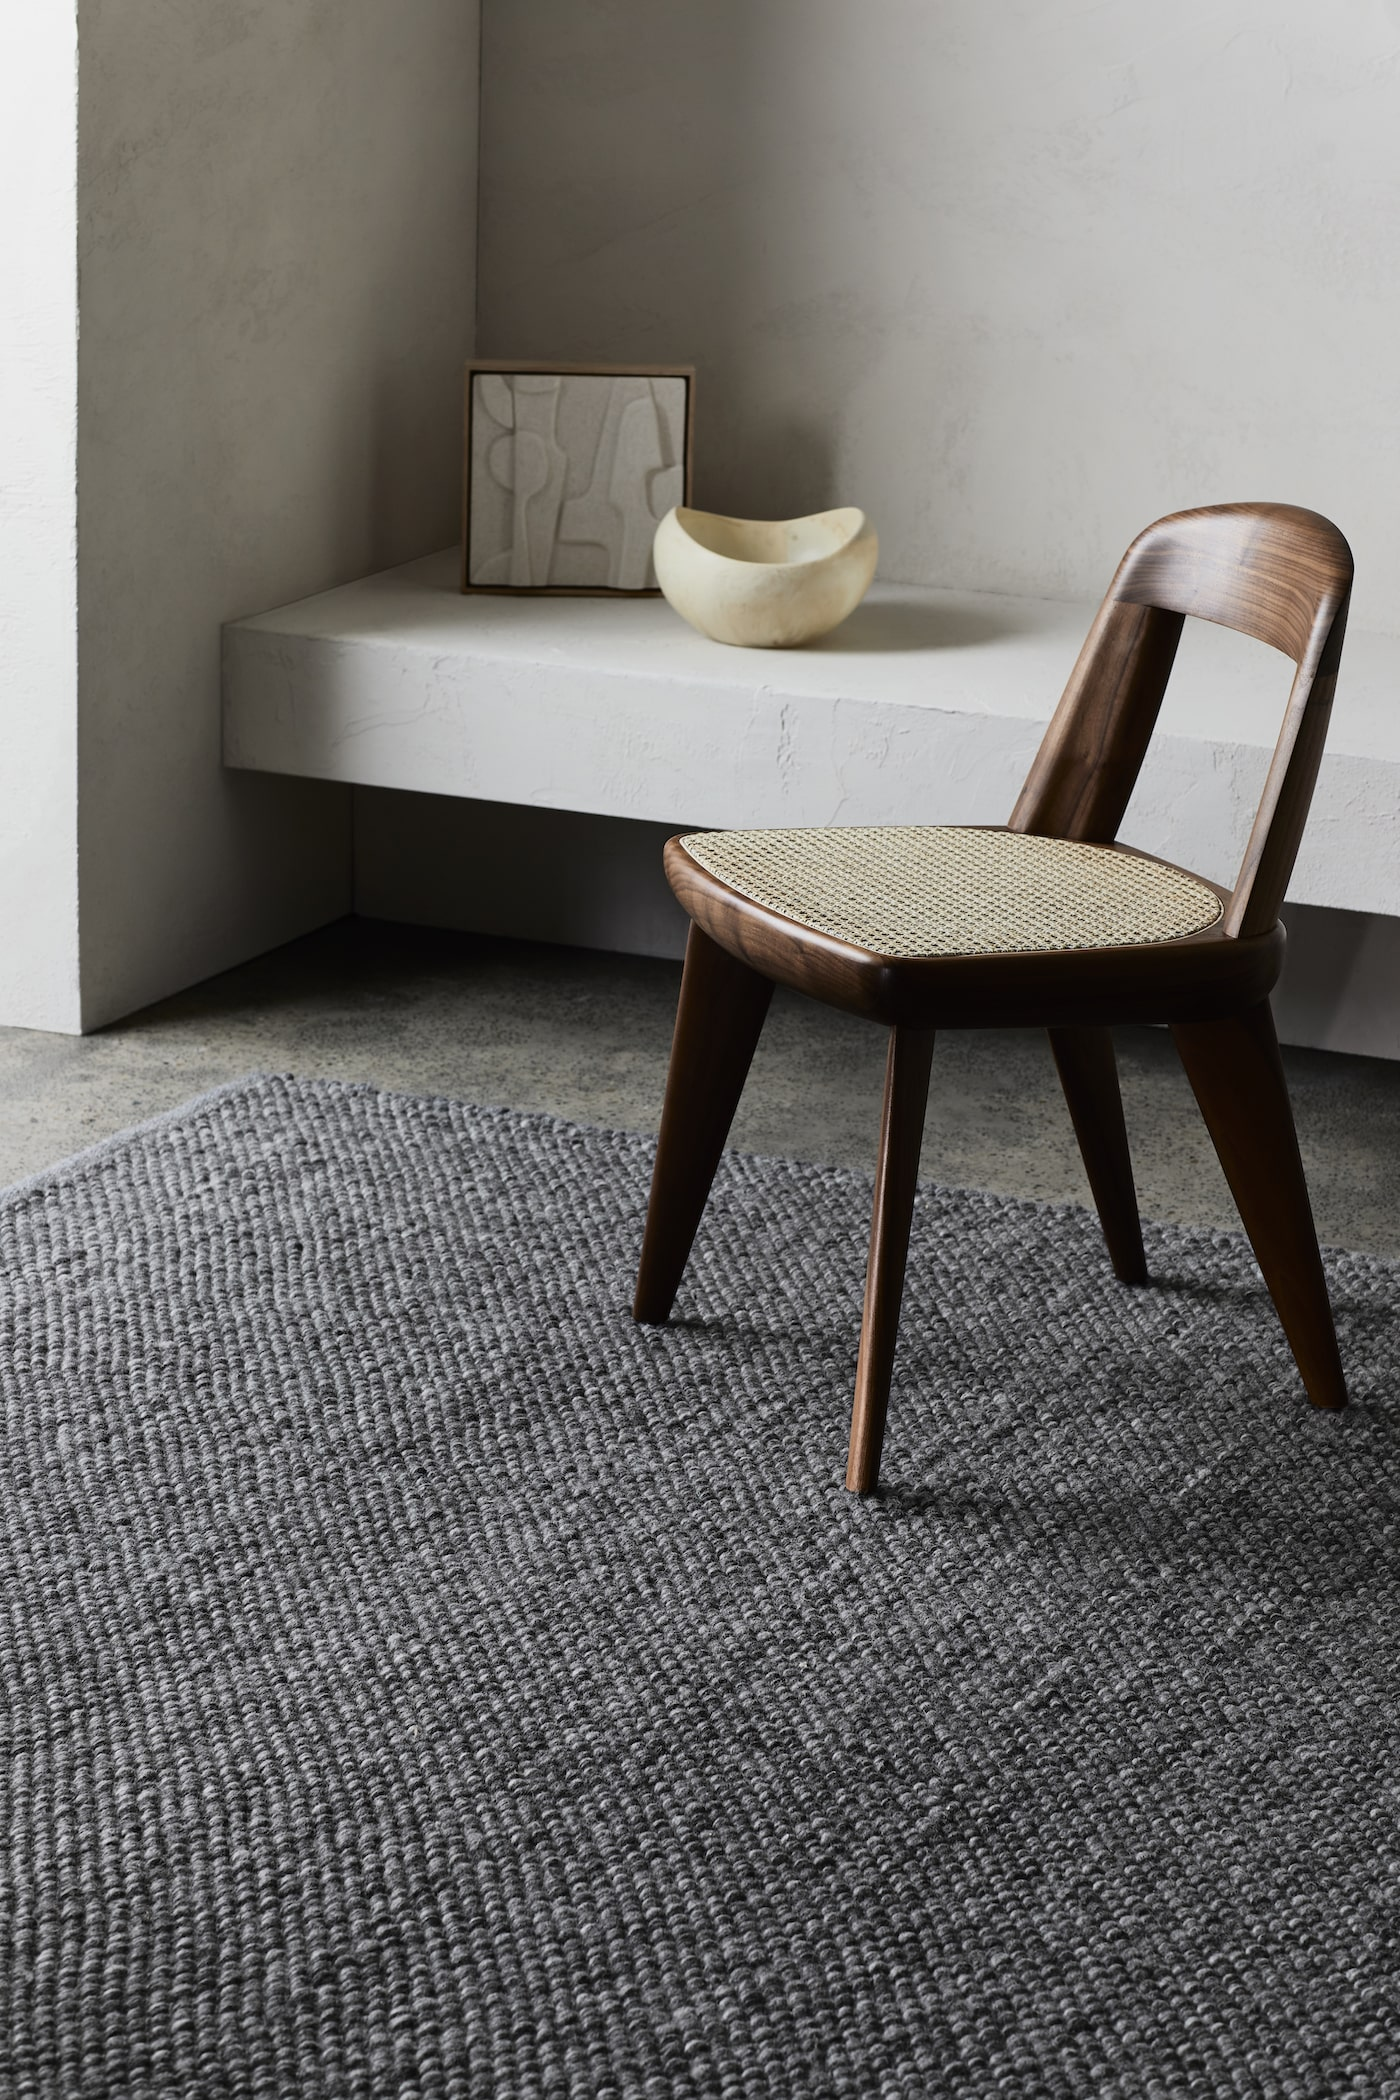 Charcoal rug under timber chair